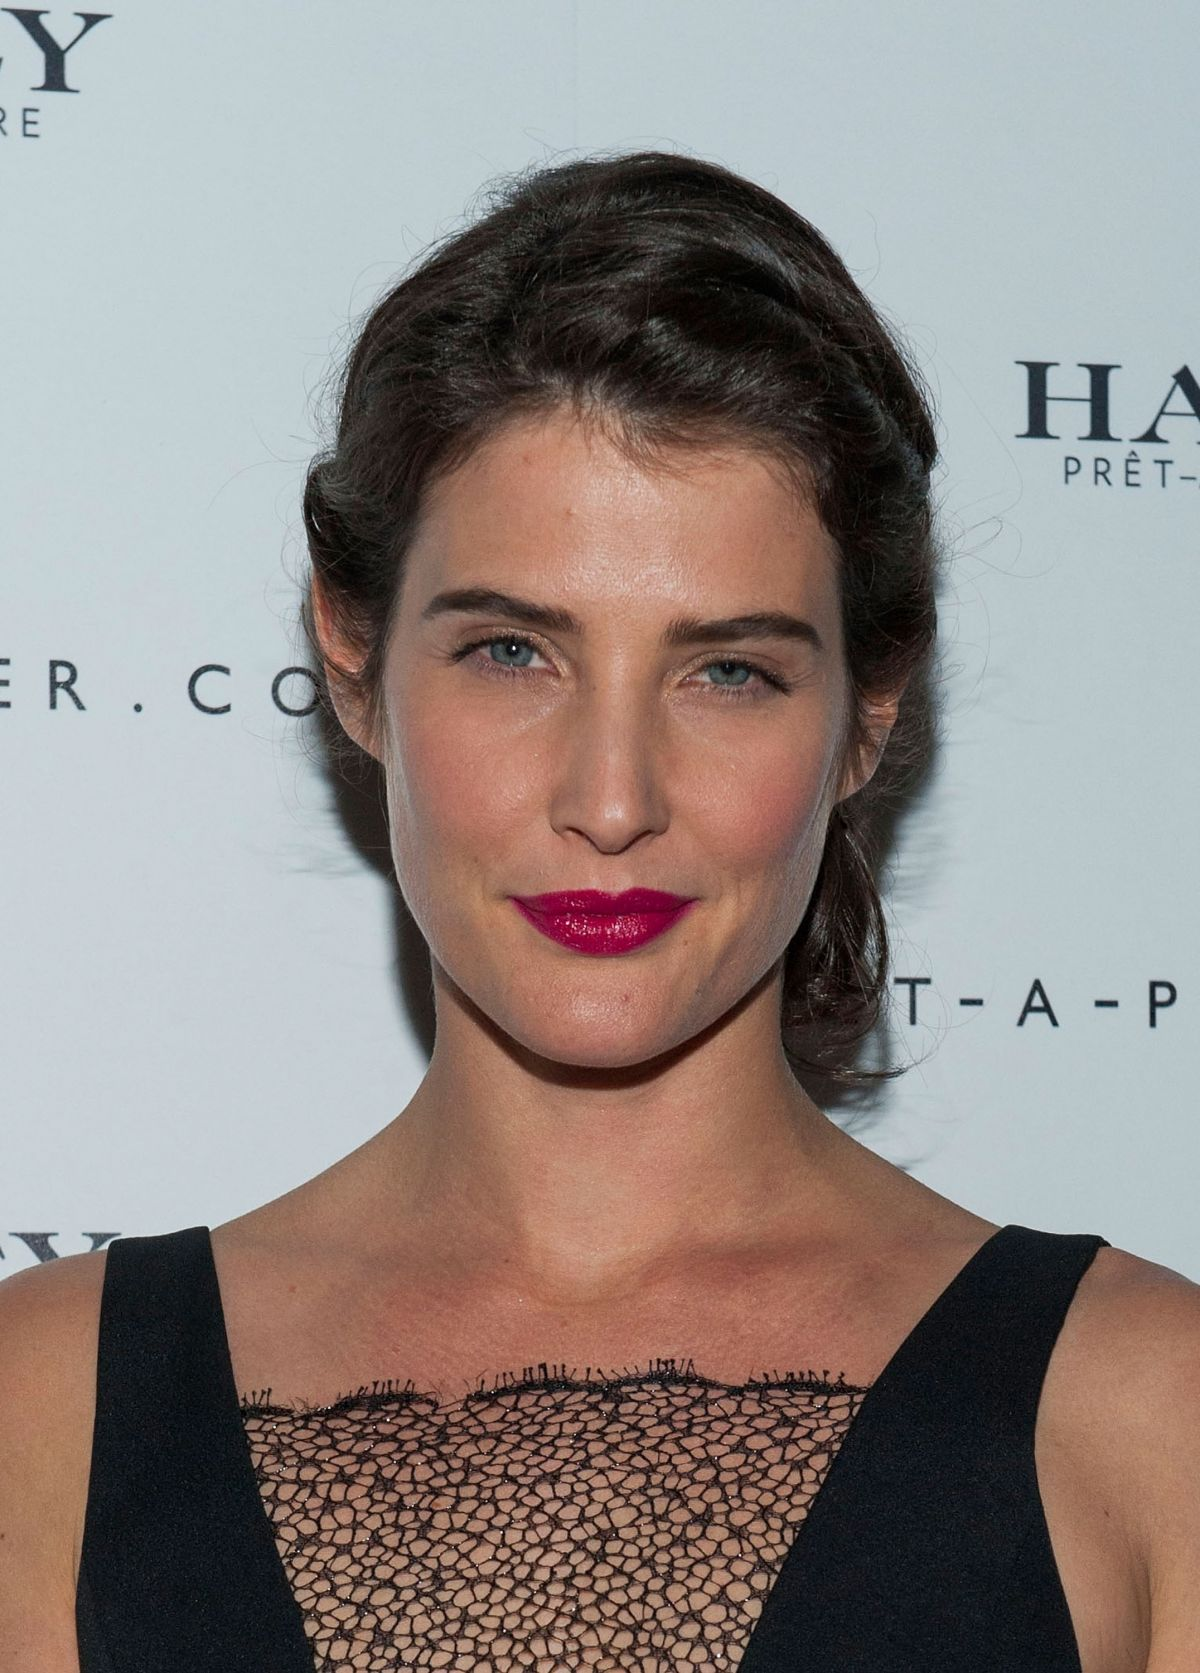 ef72666e4b8b Cobie Smulders At Net-A-Porter Hosts Haney Pret-A-Couture Launch In ...